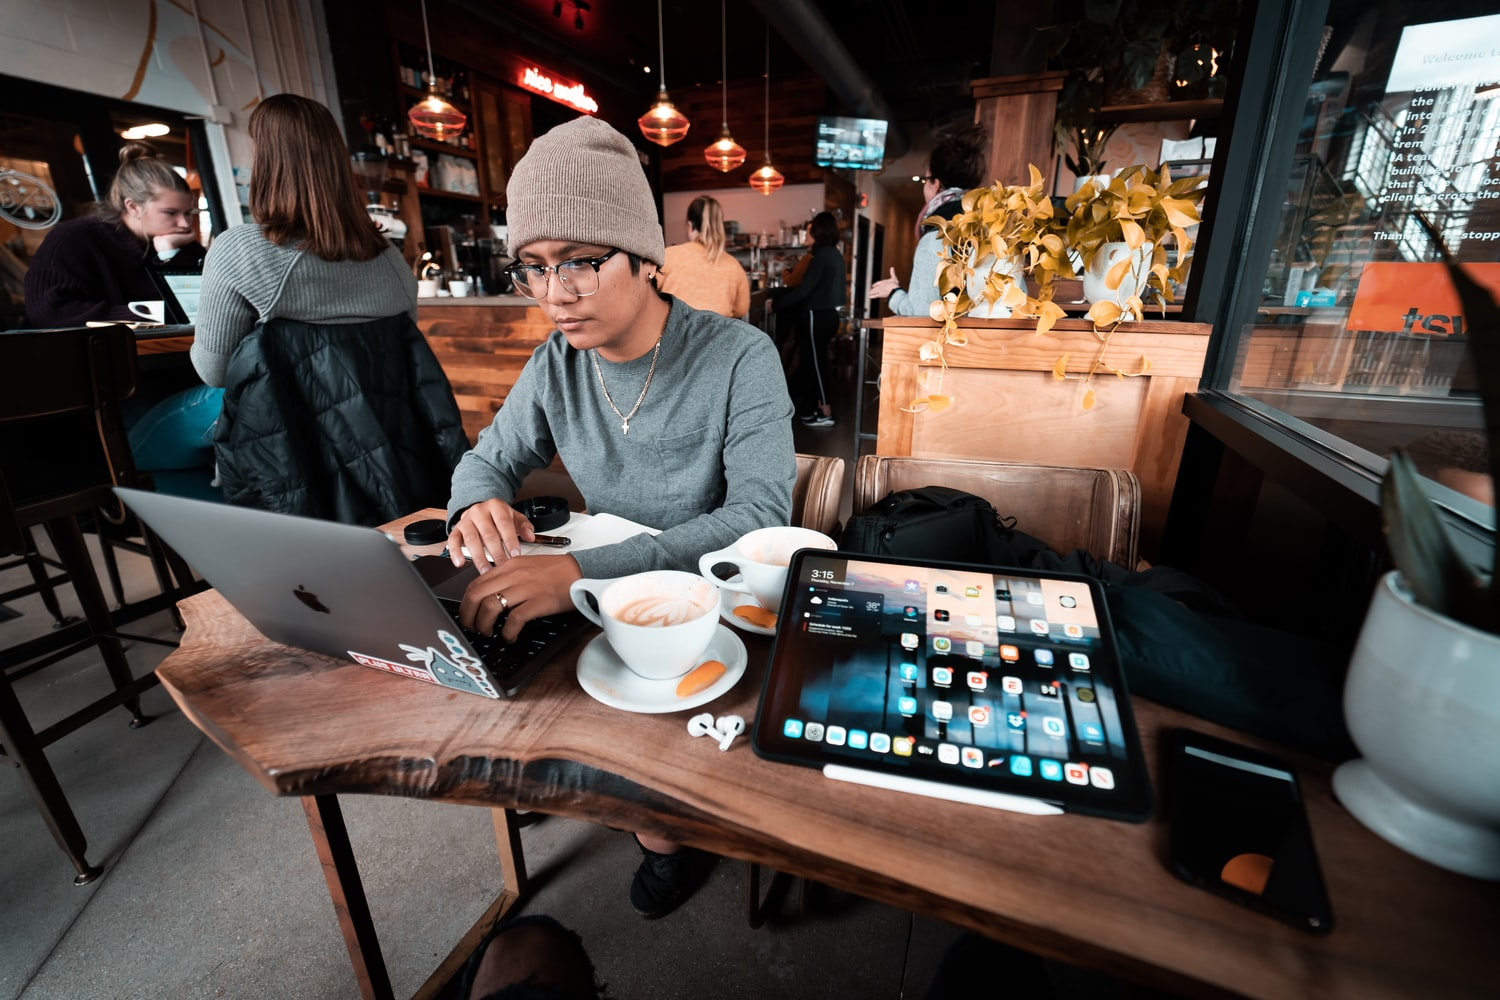 Restaurant owner working on his laptop